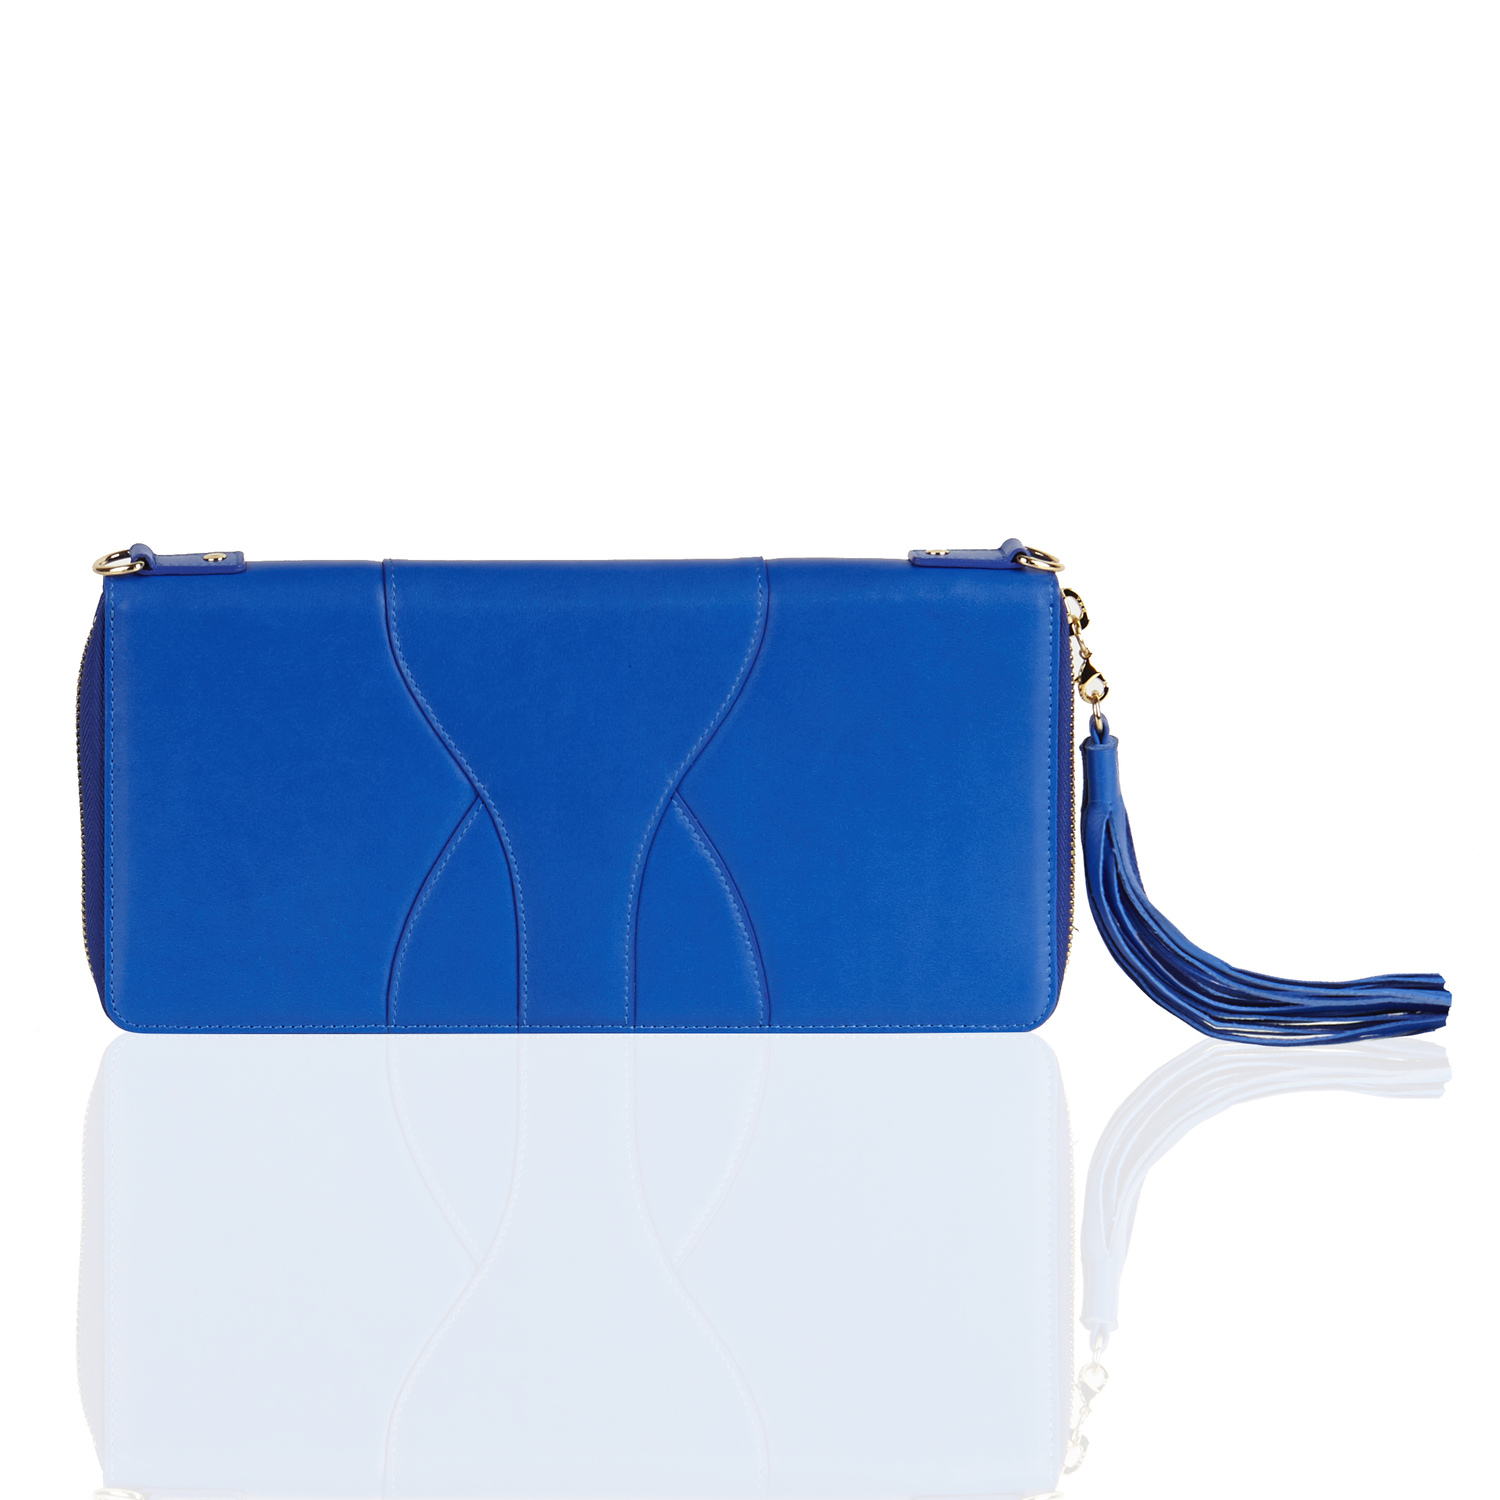 LUXURIOUS LAPIS - $295.00